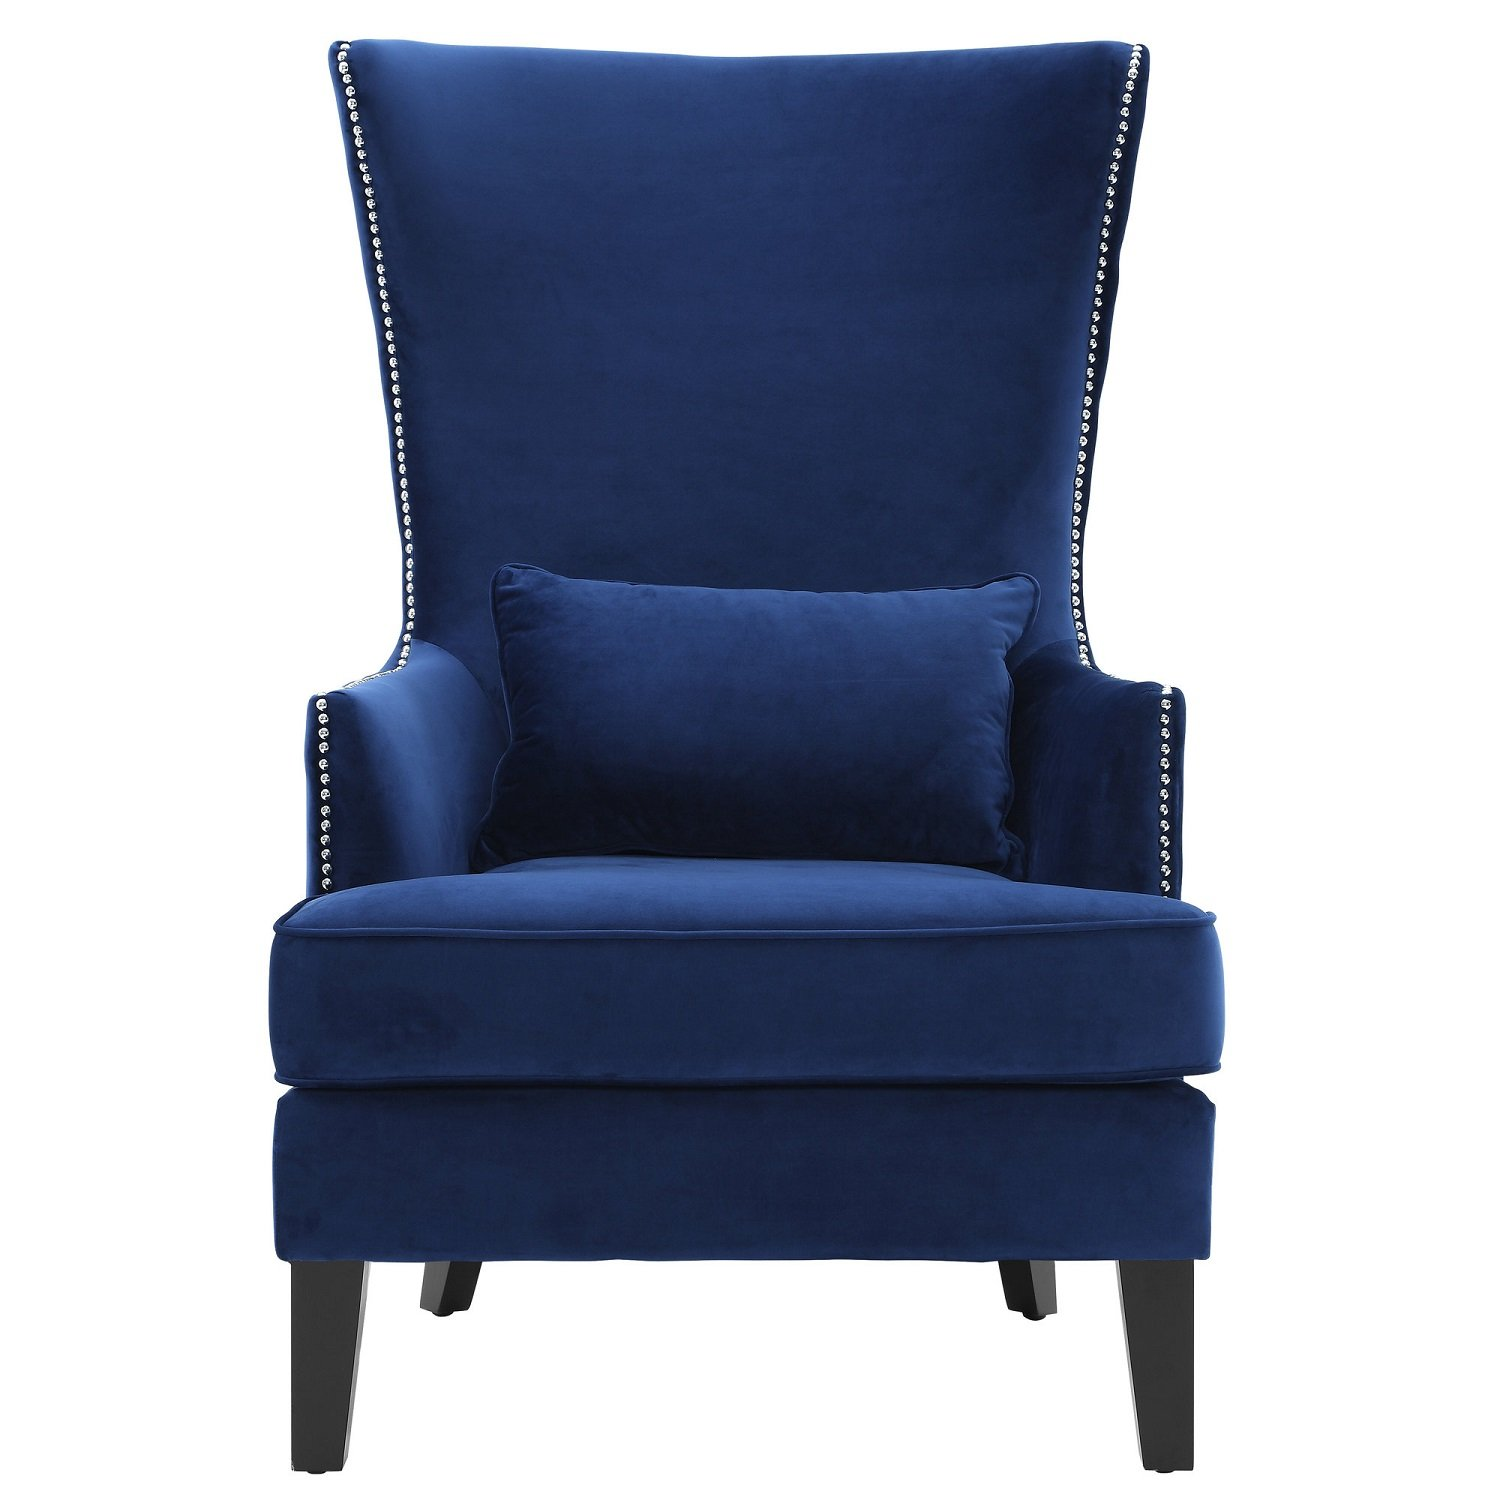 Magnificent Tov Furniture The Bristol Collection Contemporary Velvet Upholstered Tall Living Room Parlor Chair With Nailhead Trim Navy Gmtry Best Dining Table And Chair Ideas Images Gmtryco